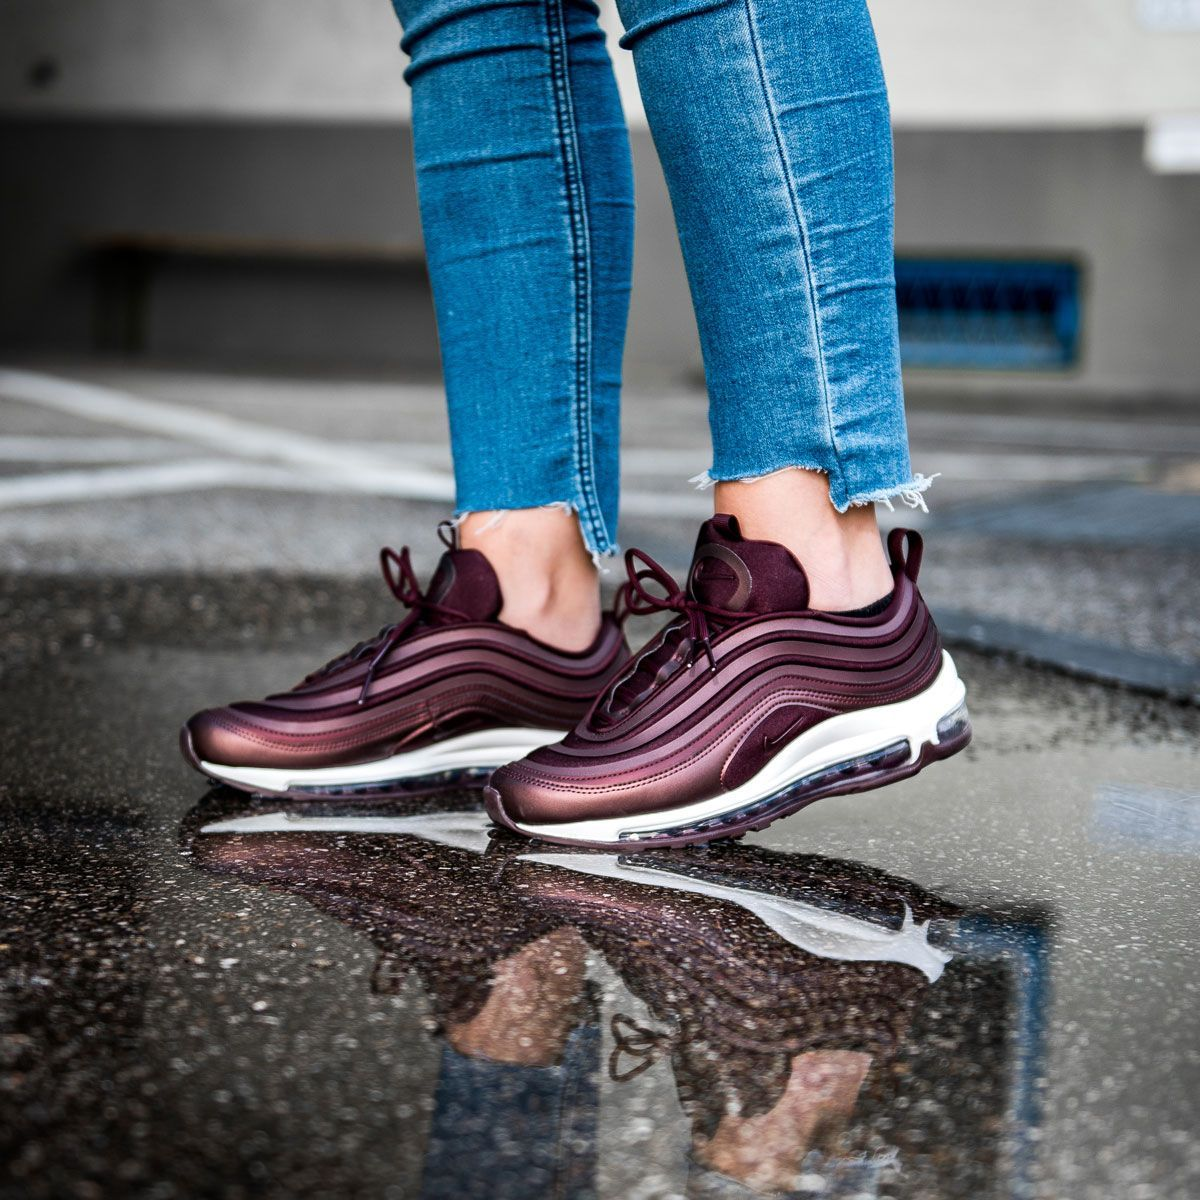 8663c079 Nike Women's Air Max 97 Ultra. Another one for the ladies. Slick and ...